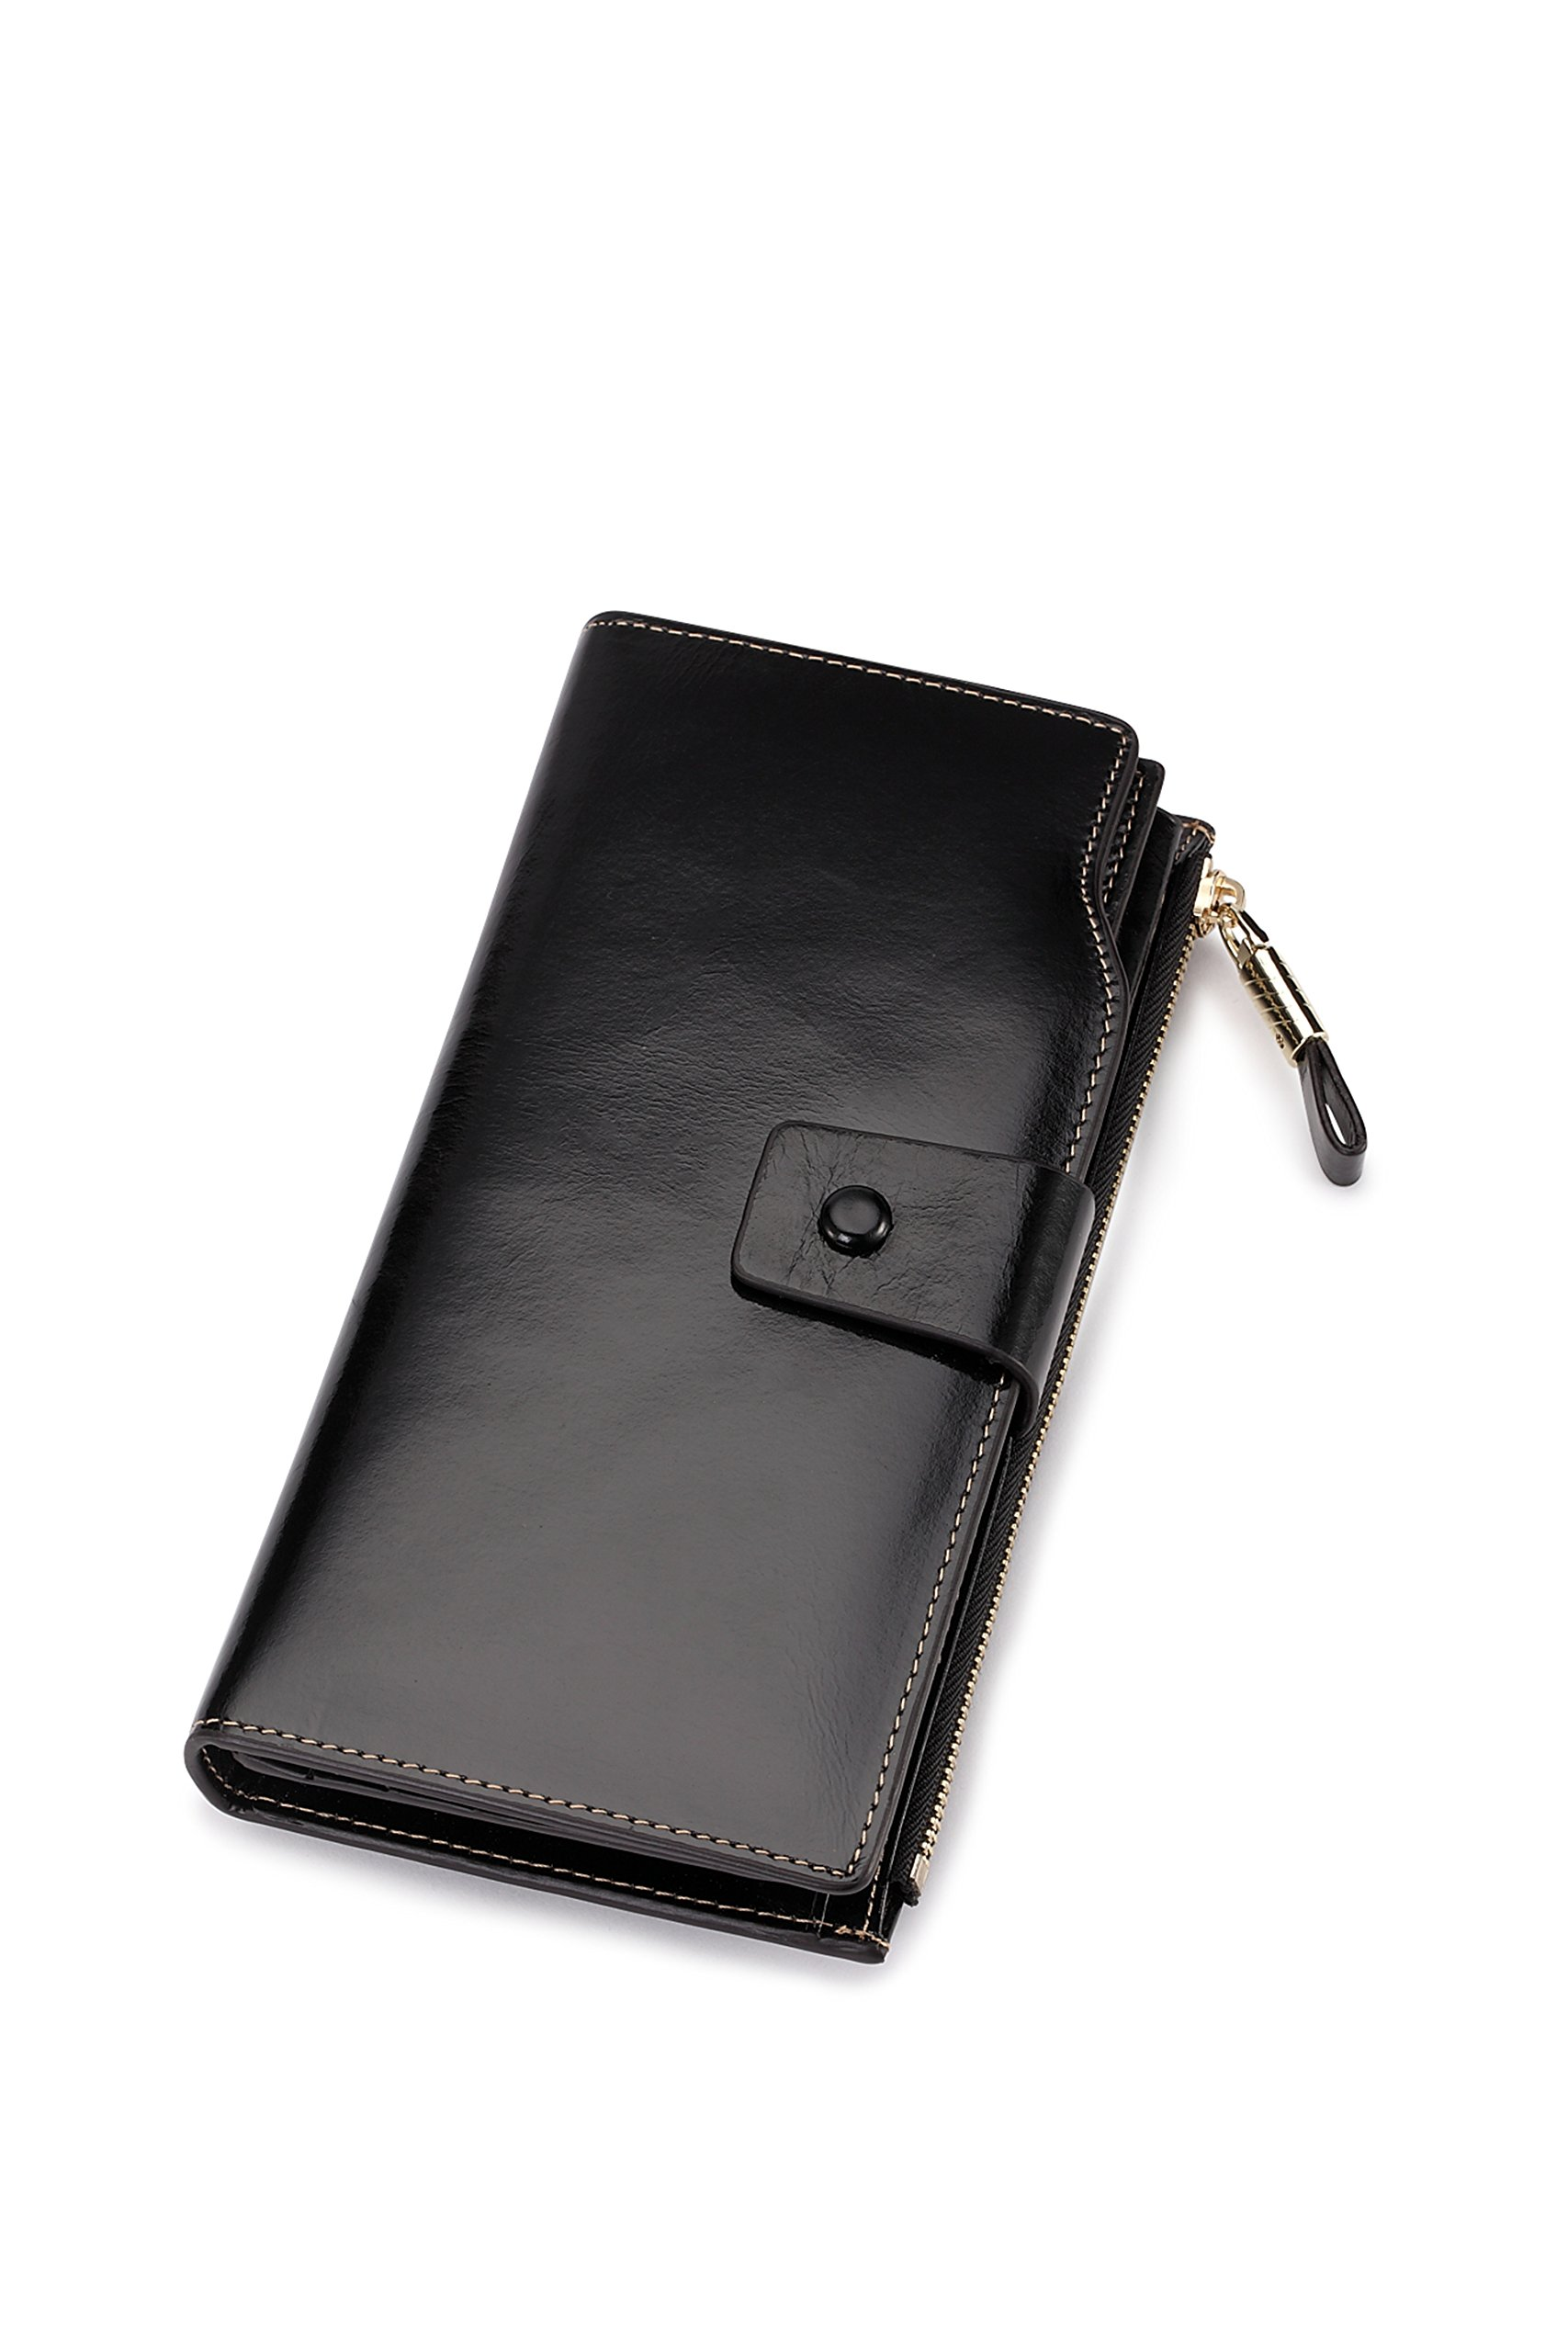 Genuine leather Multifunctional Women Wallet Card ID Holder Coin Purse Oil Wax Wallet Cell Phone Pocket Versatile Style (Black)